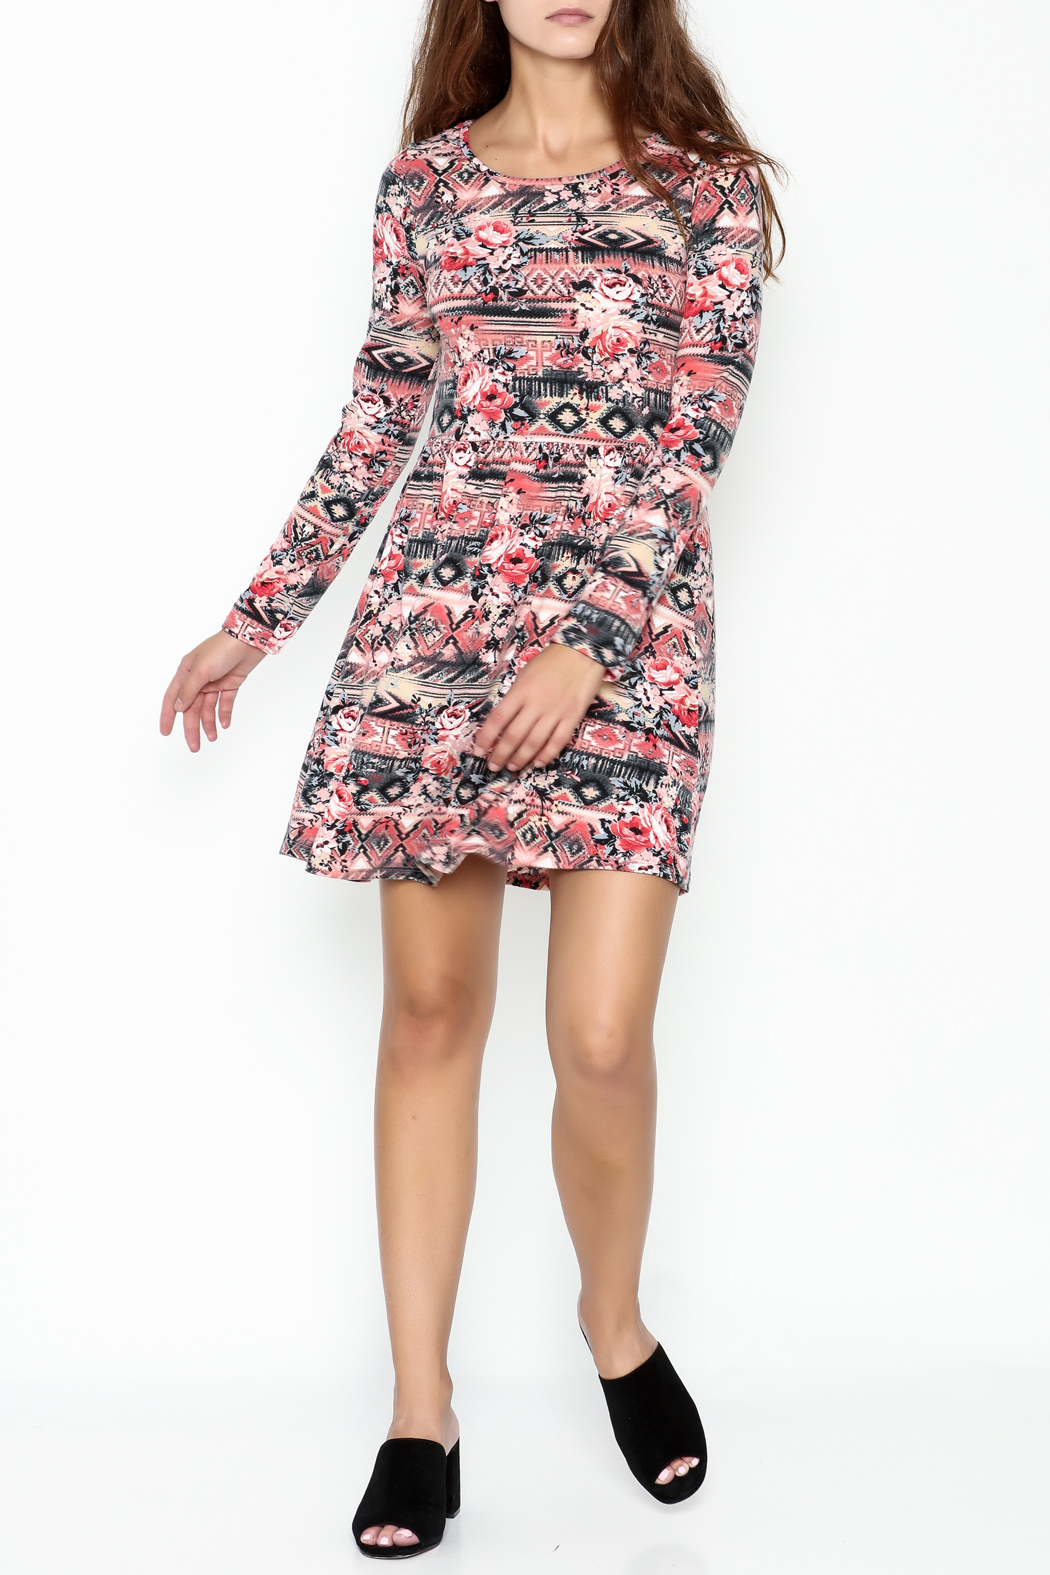 Everly Tribal Print Dress - Side Cropped Image